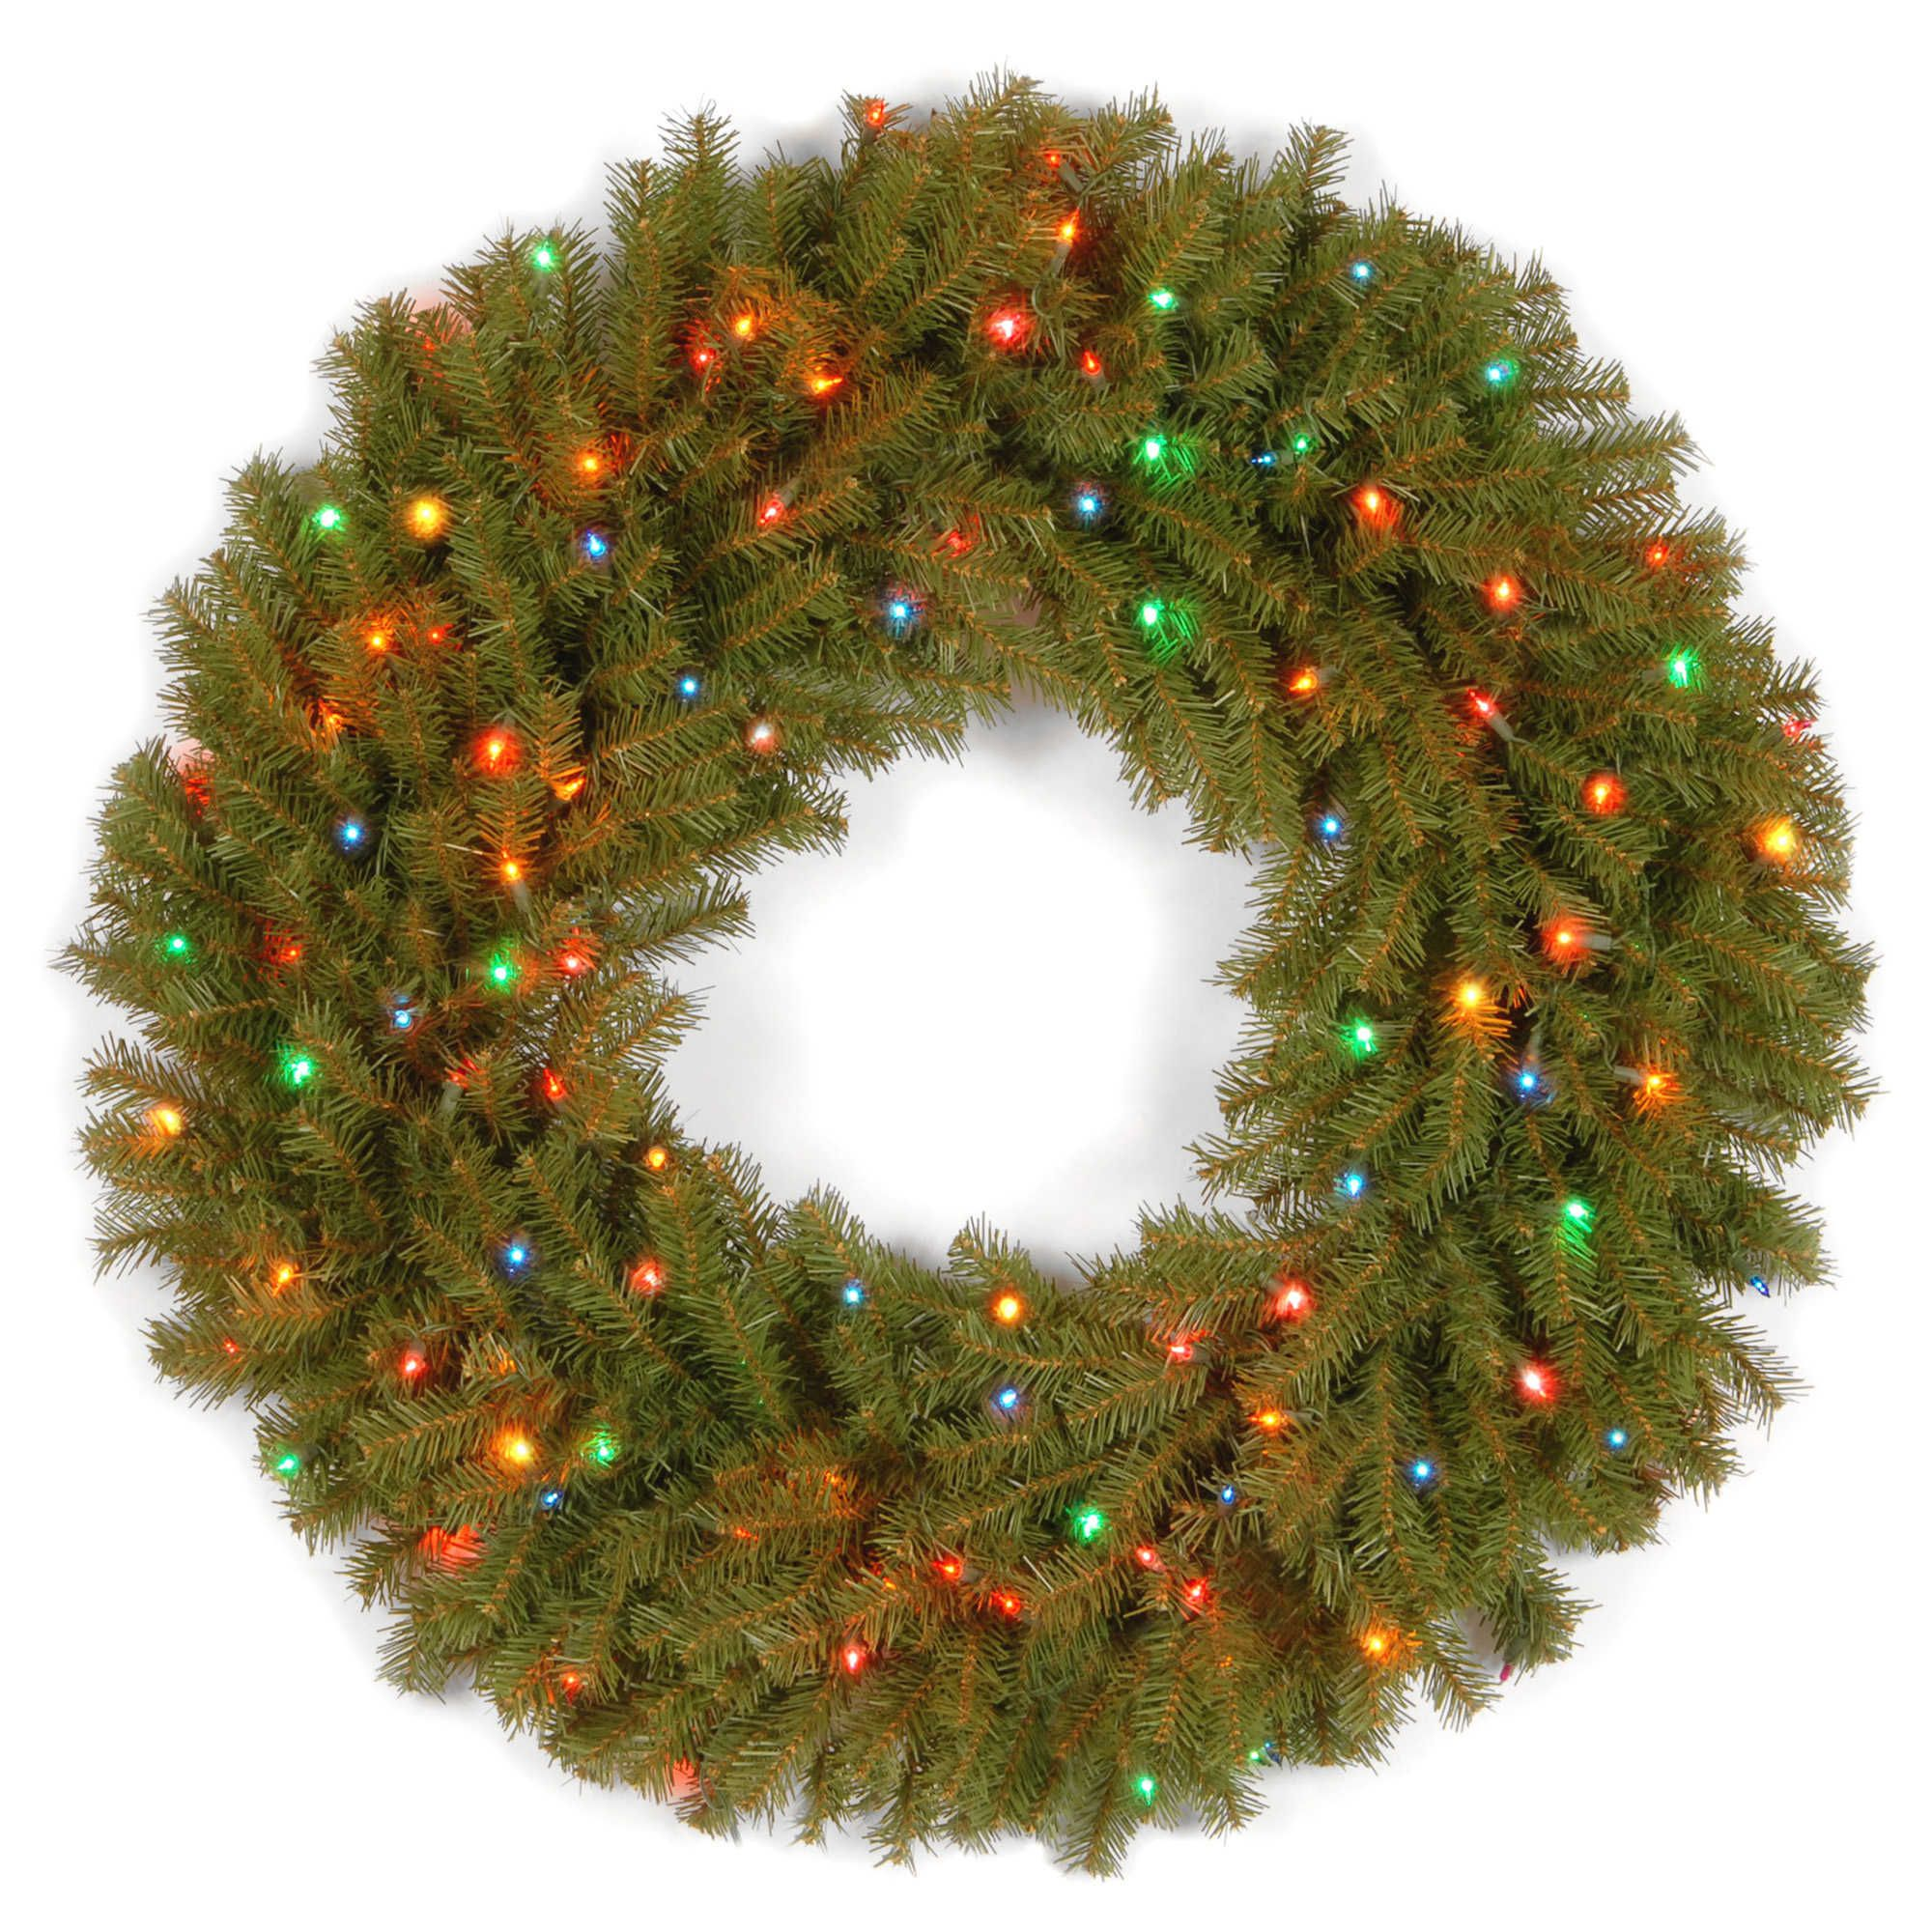 Outdoor Lighted Wreath Inspiration National Tree Company 30Inch Prelit Norwood Fir Wreath  Christmas Review